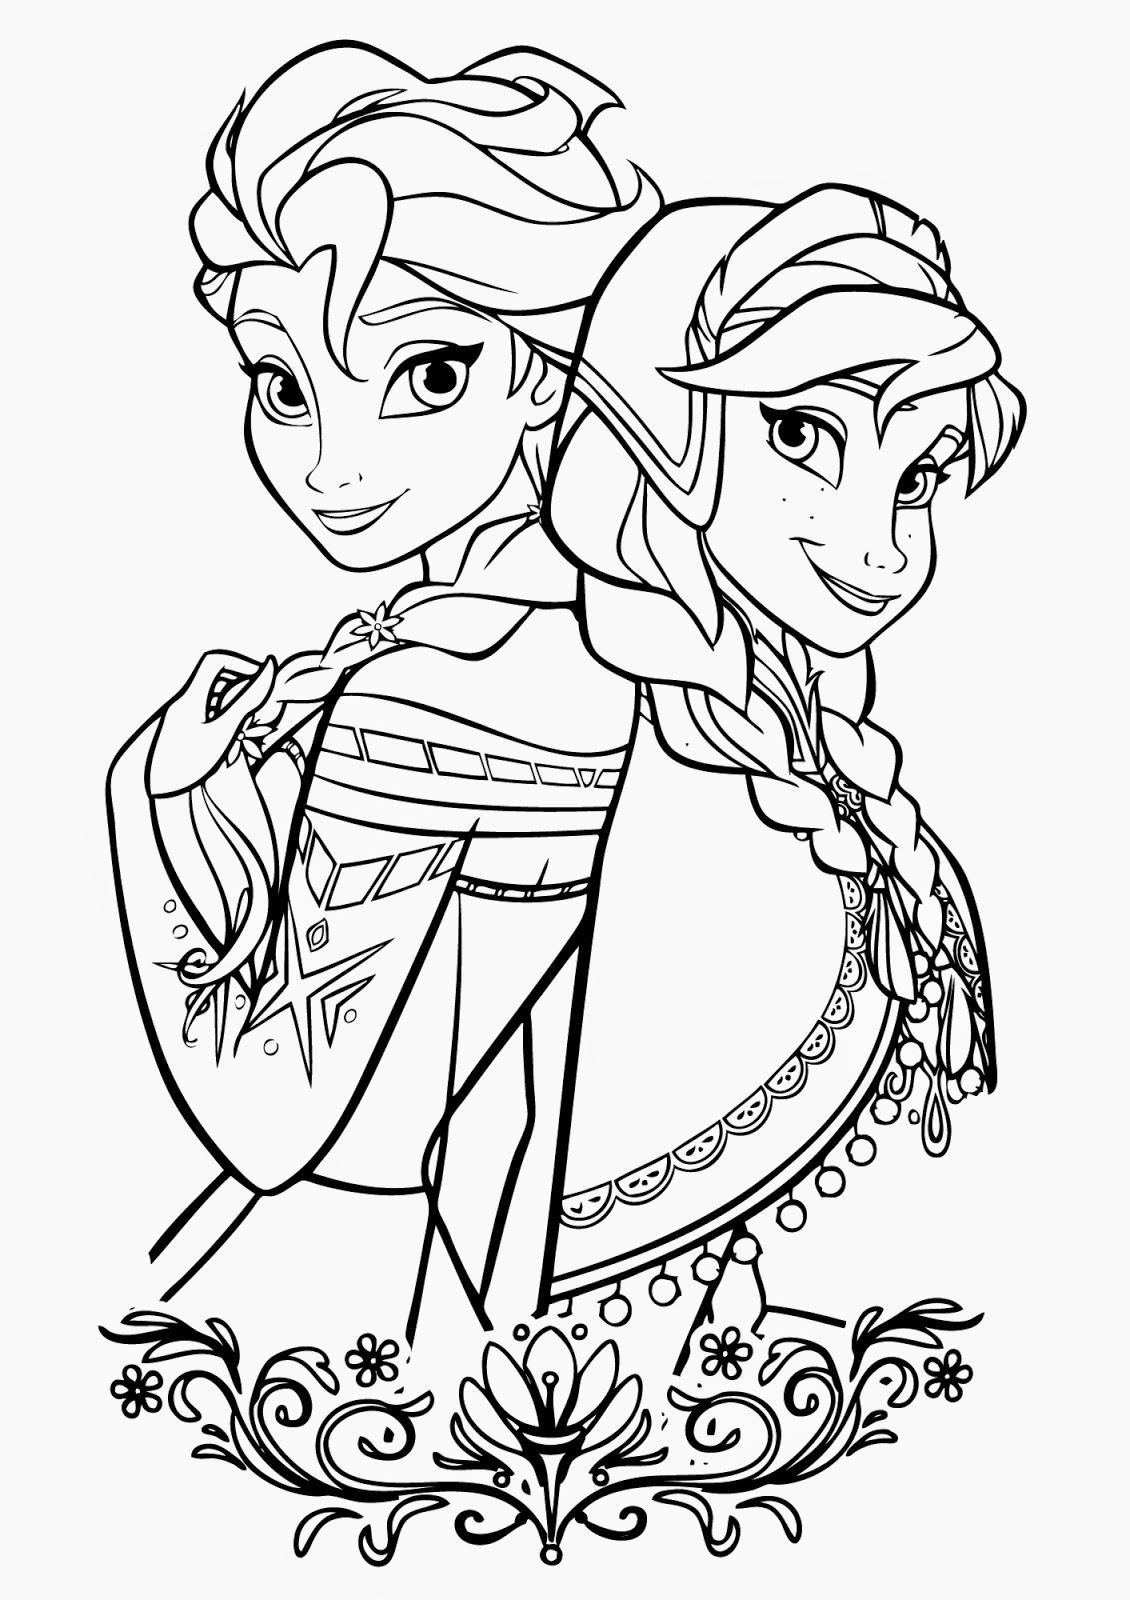 Frozen Coloring Pages On Coloring Book : Free coloring pages of frozen